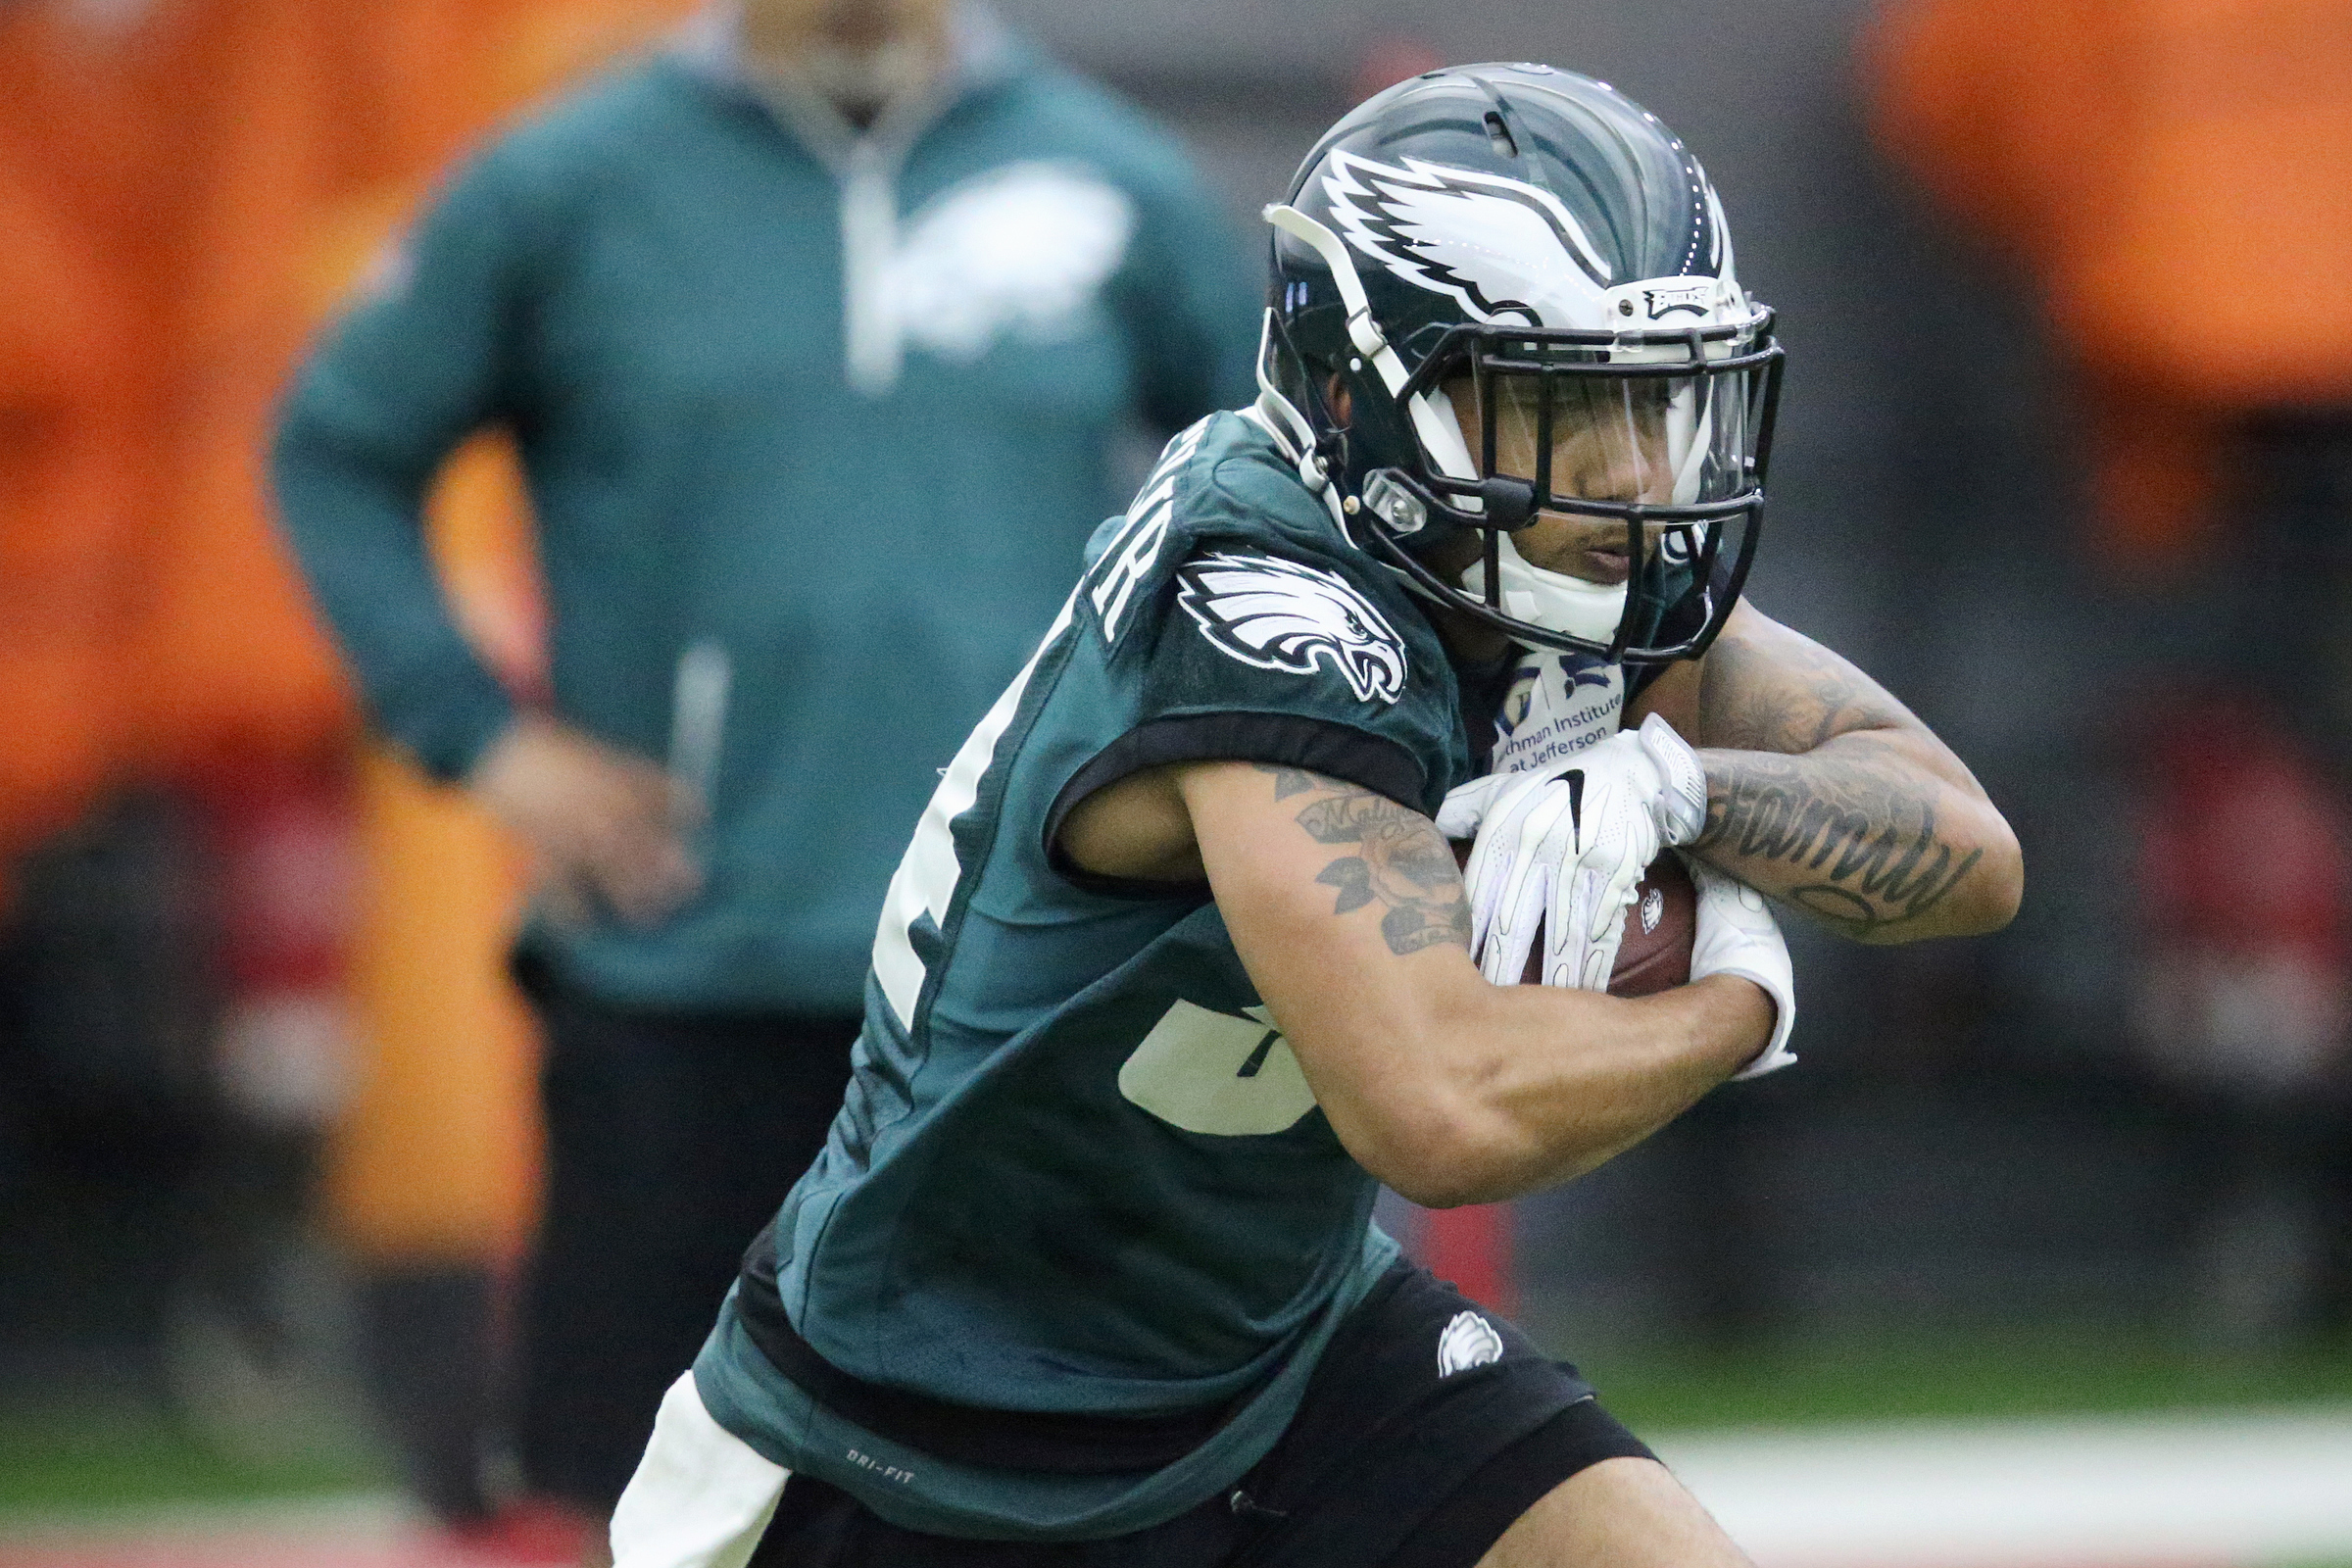 Eagles running back Donnel Pumphrey carries the ball during practice at the NovaCare Complex in South Philadelphia on Tuesday, May 22, 2018. Tuesday was the first day of the Eagles´ organized team activities. TIM TAI / Staff Photographer